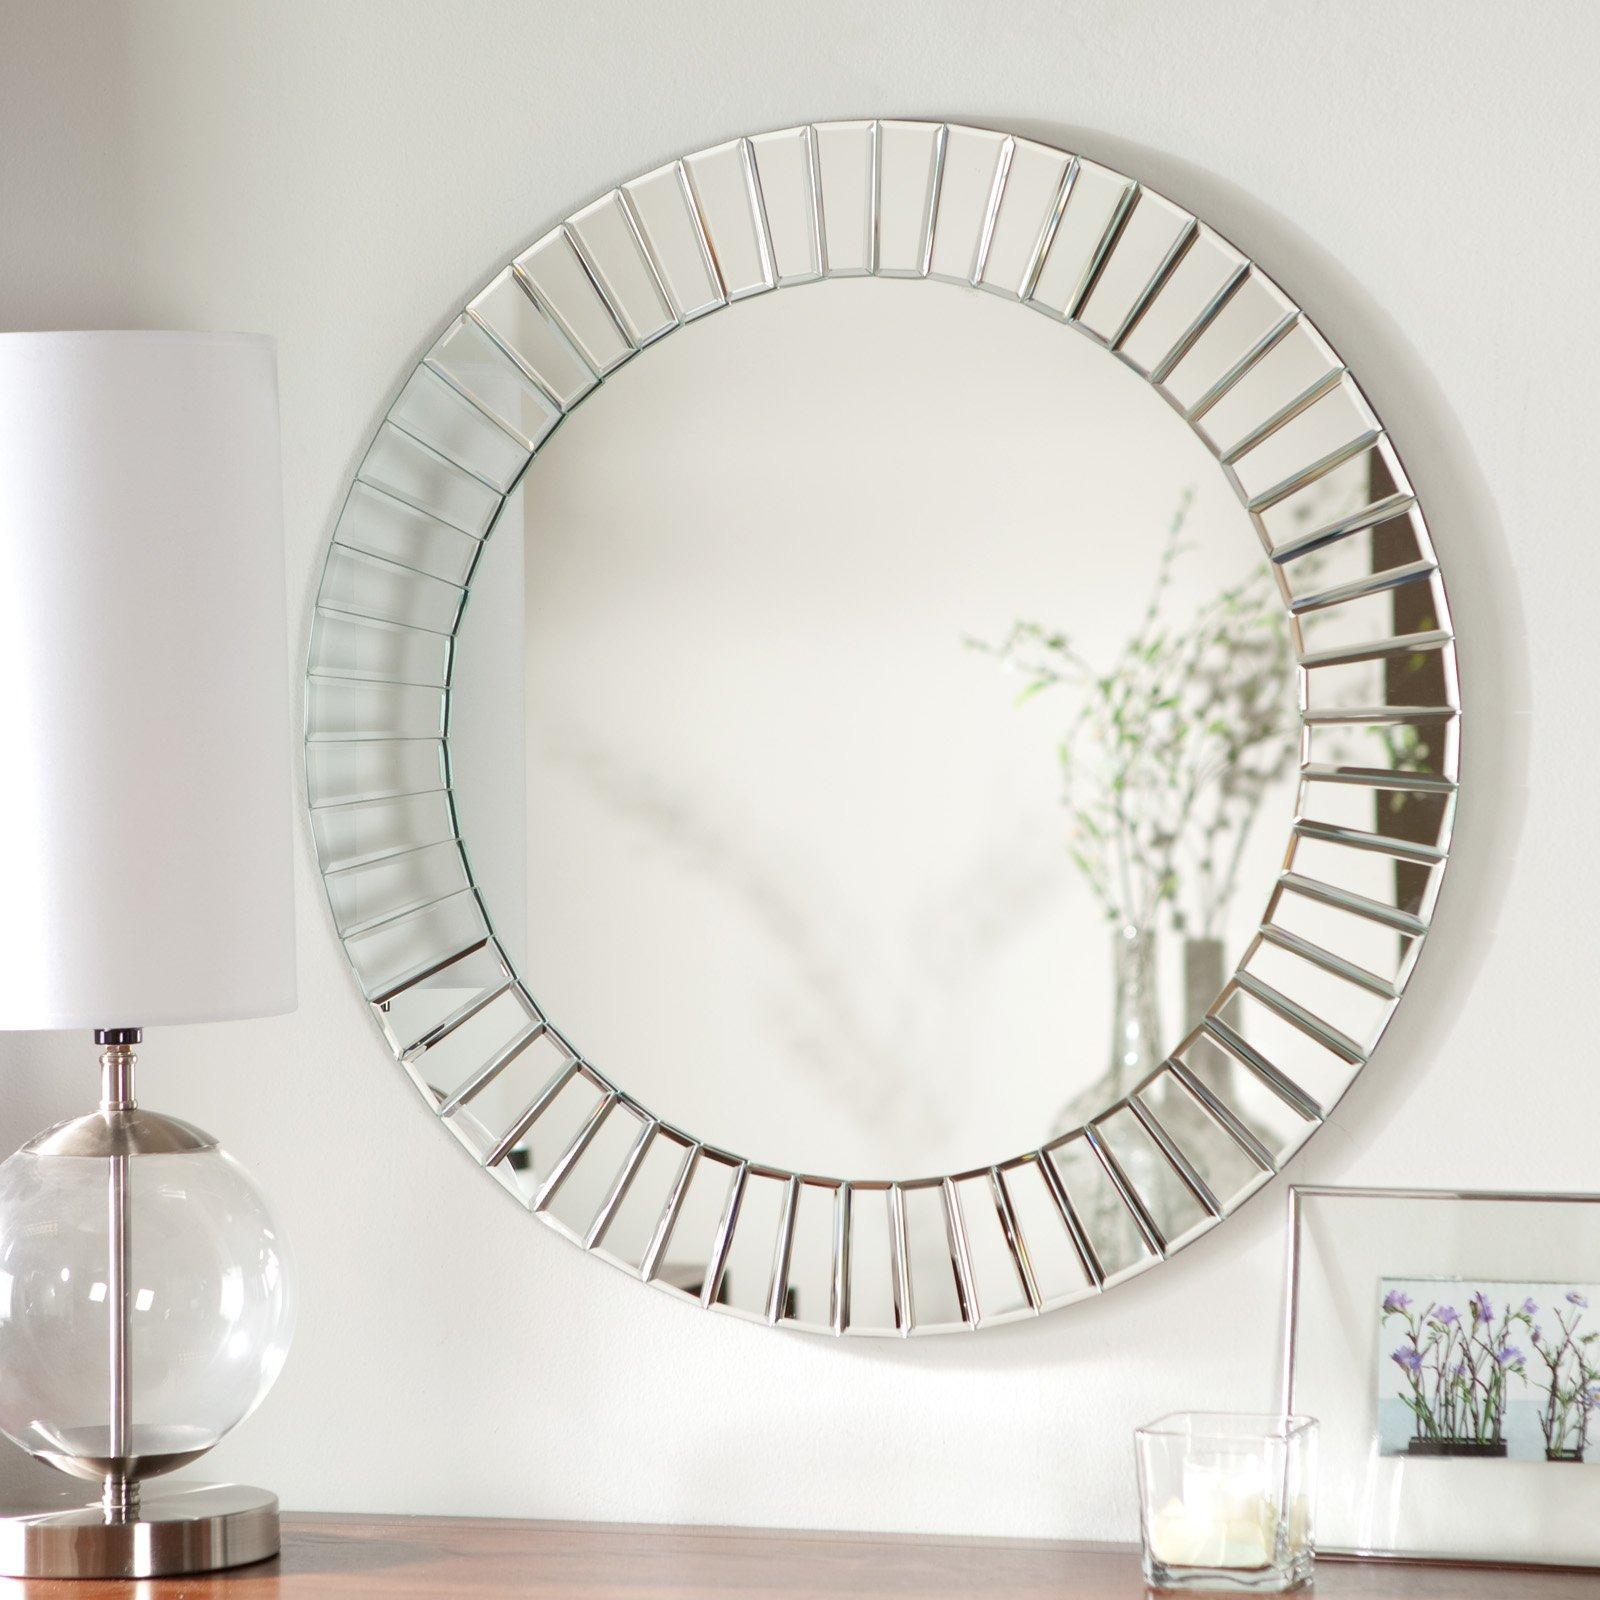 Décor Wonderland Fortune Modern Frameless Beveled Wall Mirror Regarding Frameless Wall Mirrors (Image 4 of 20)